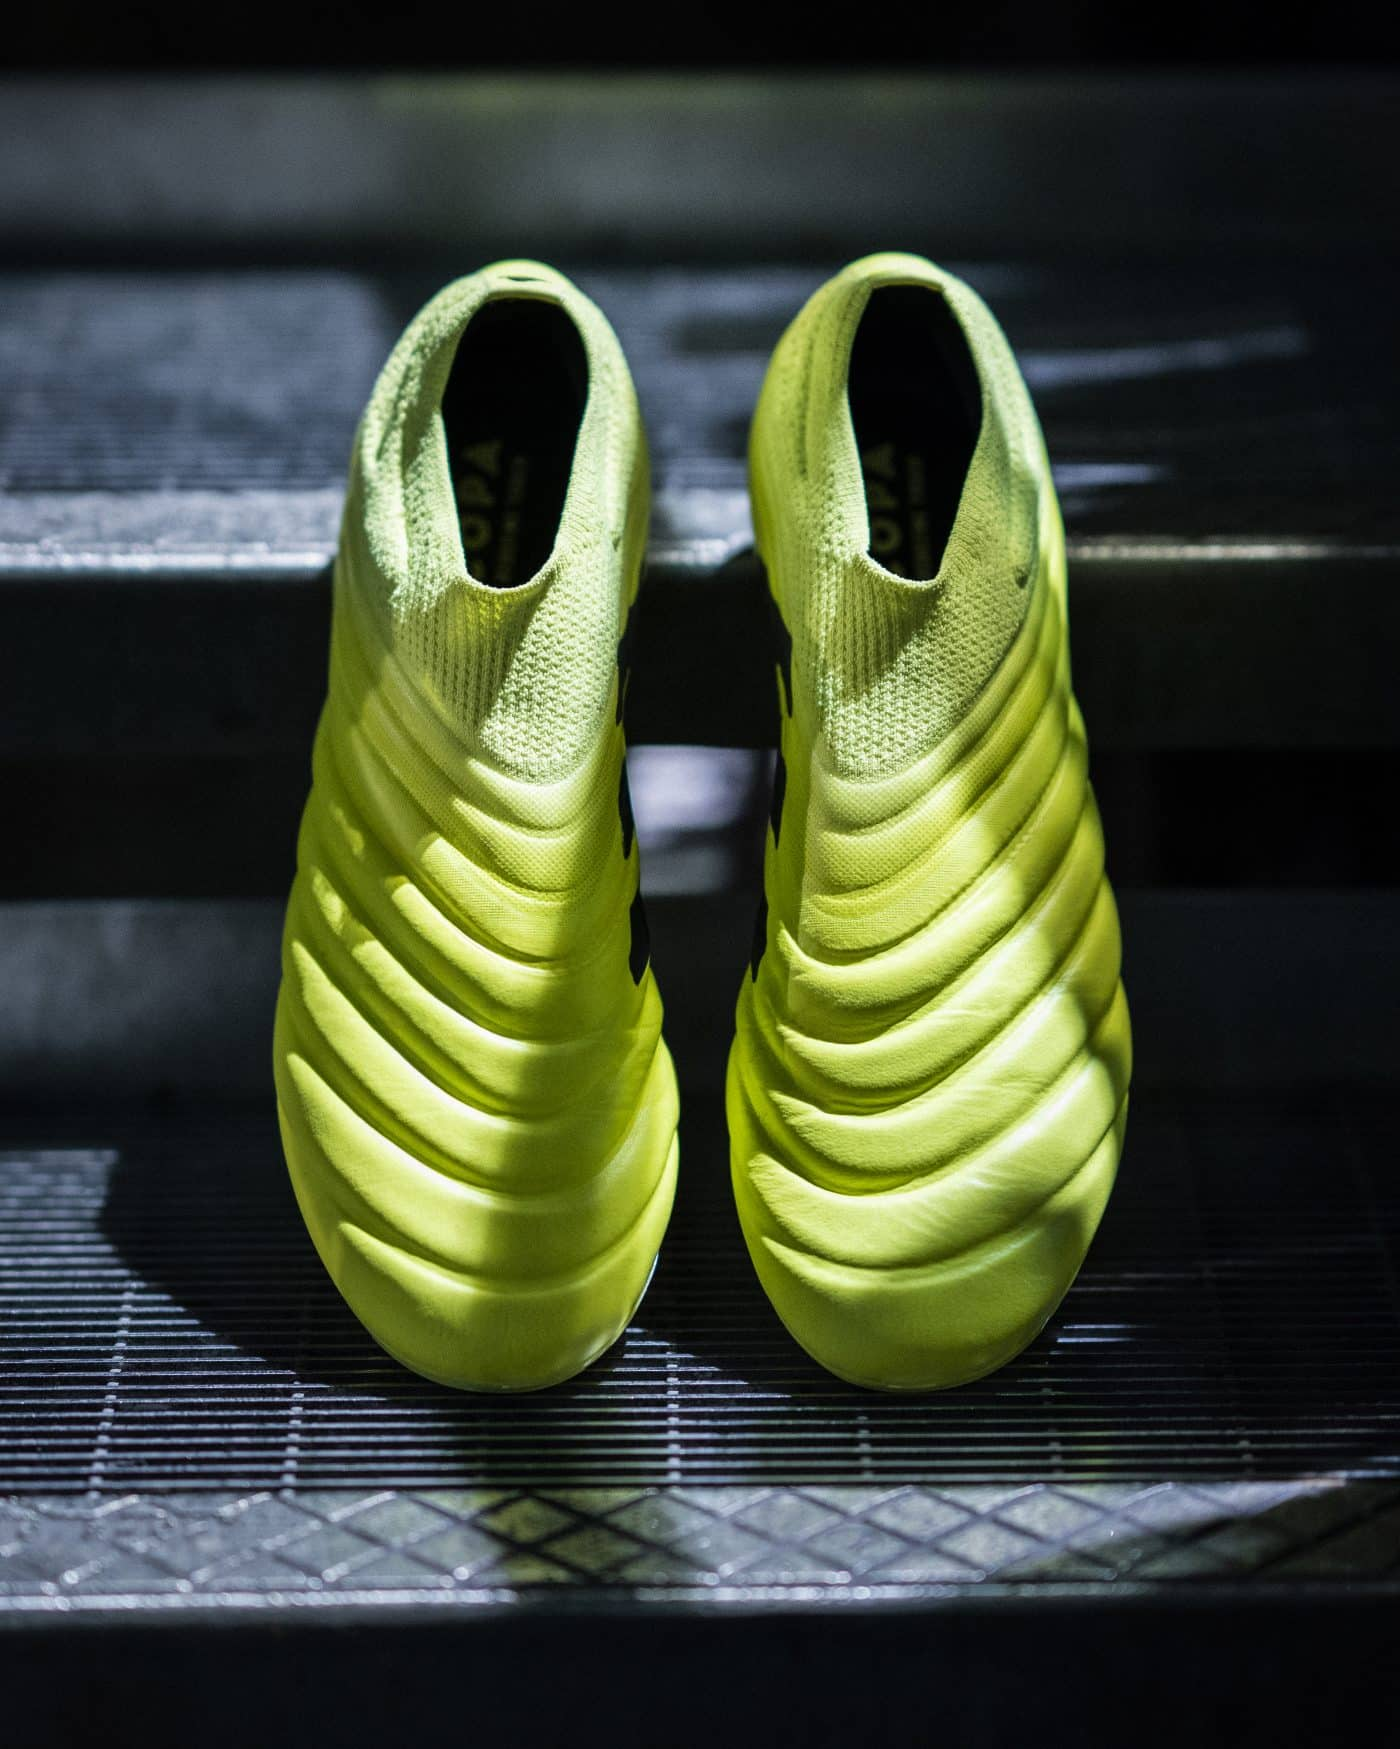 adidas-copa-19-pack-hard-wired-juillet-2019-3